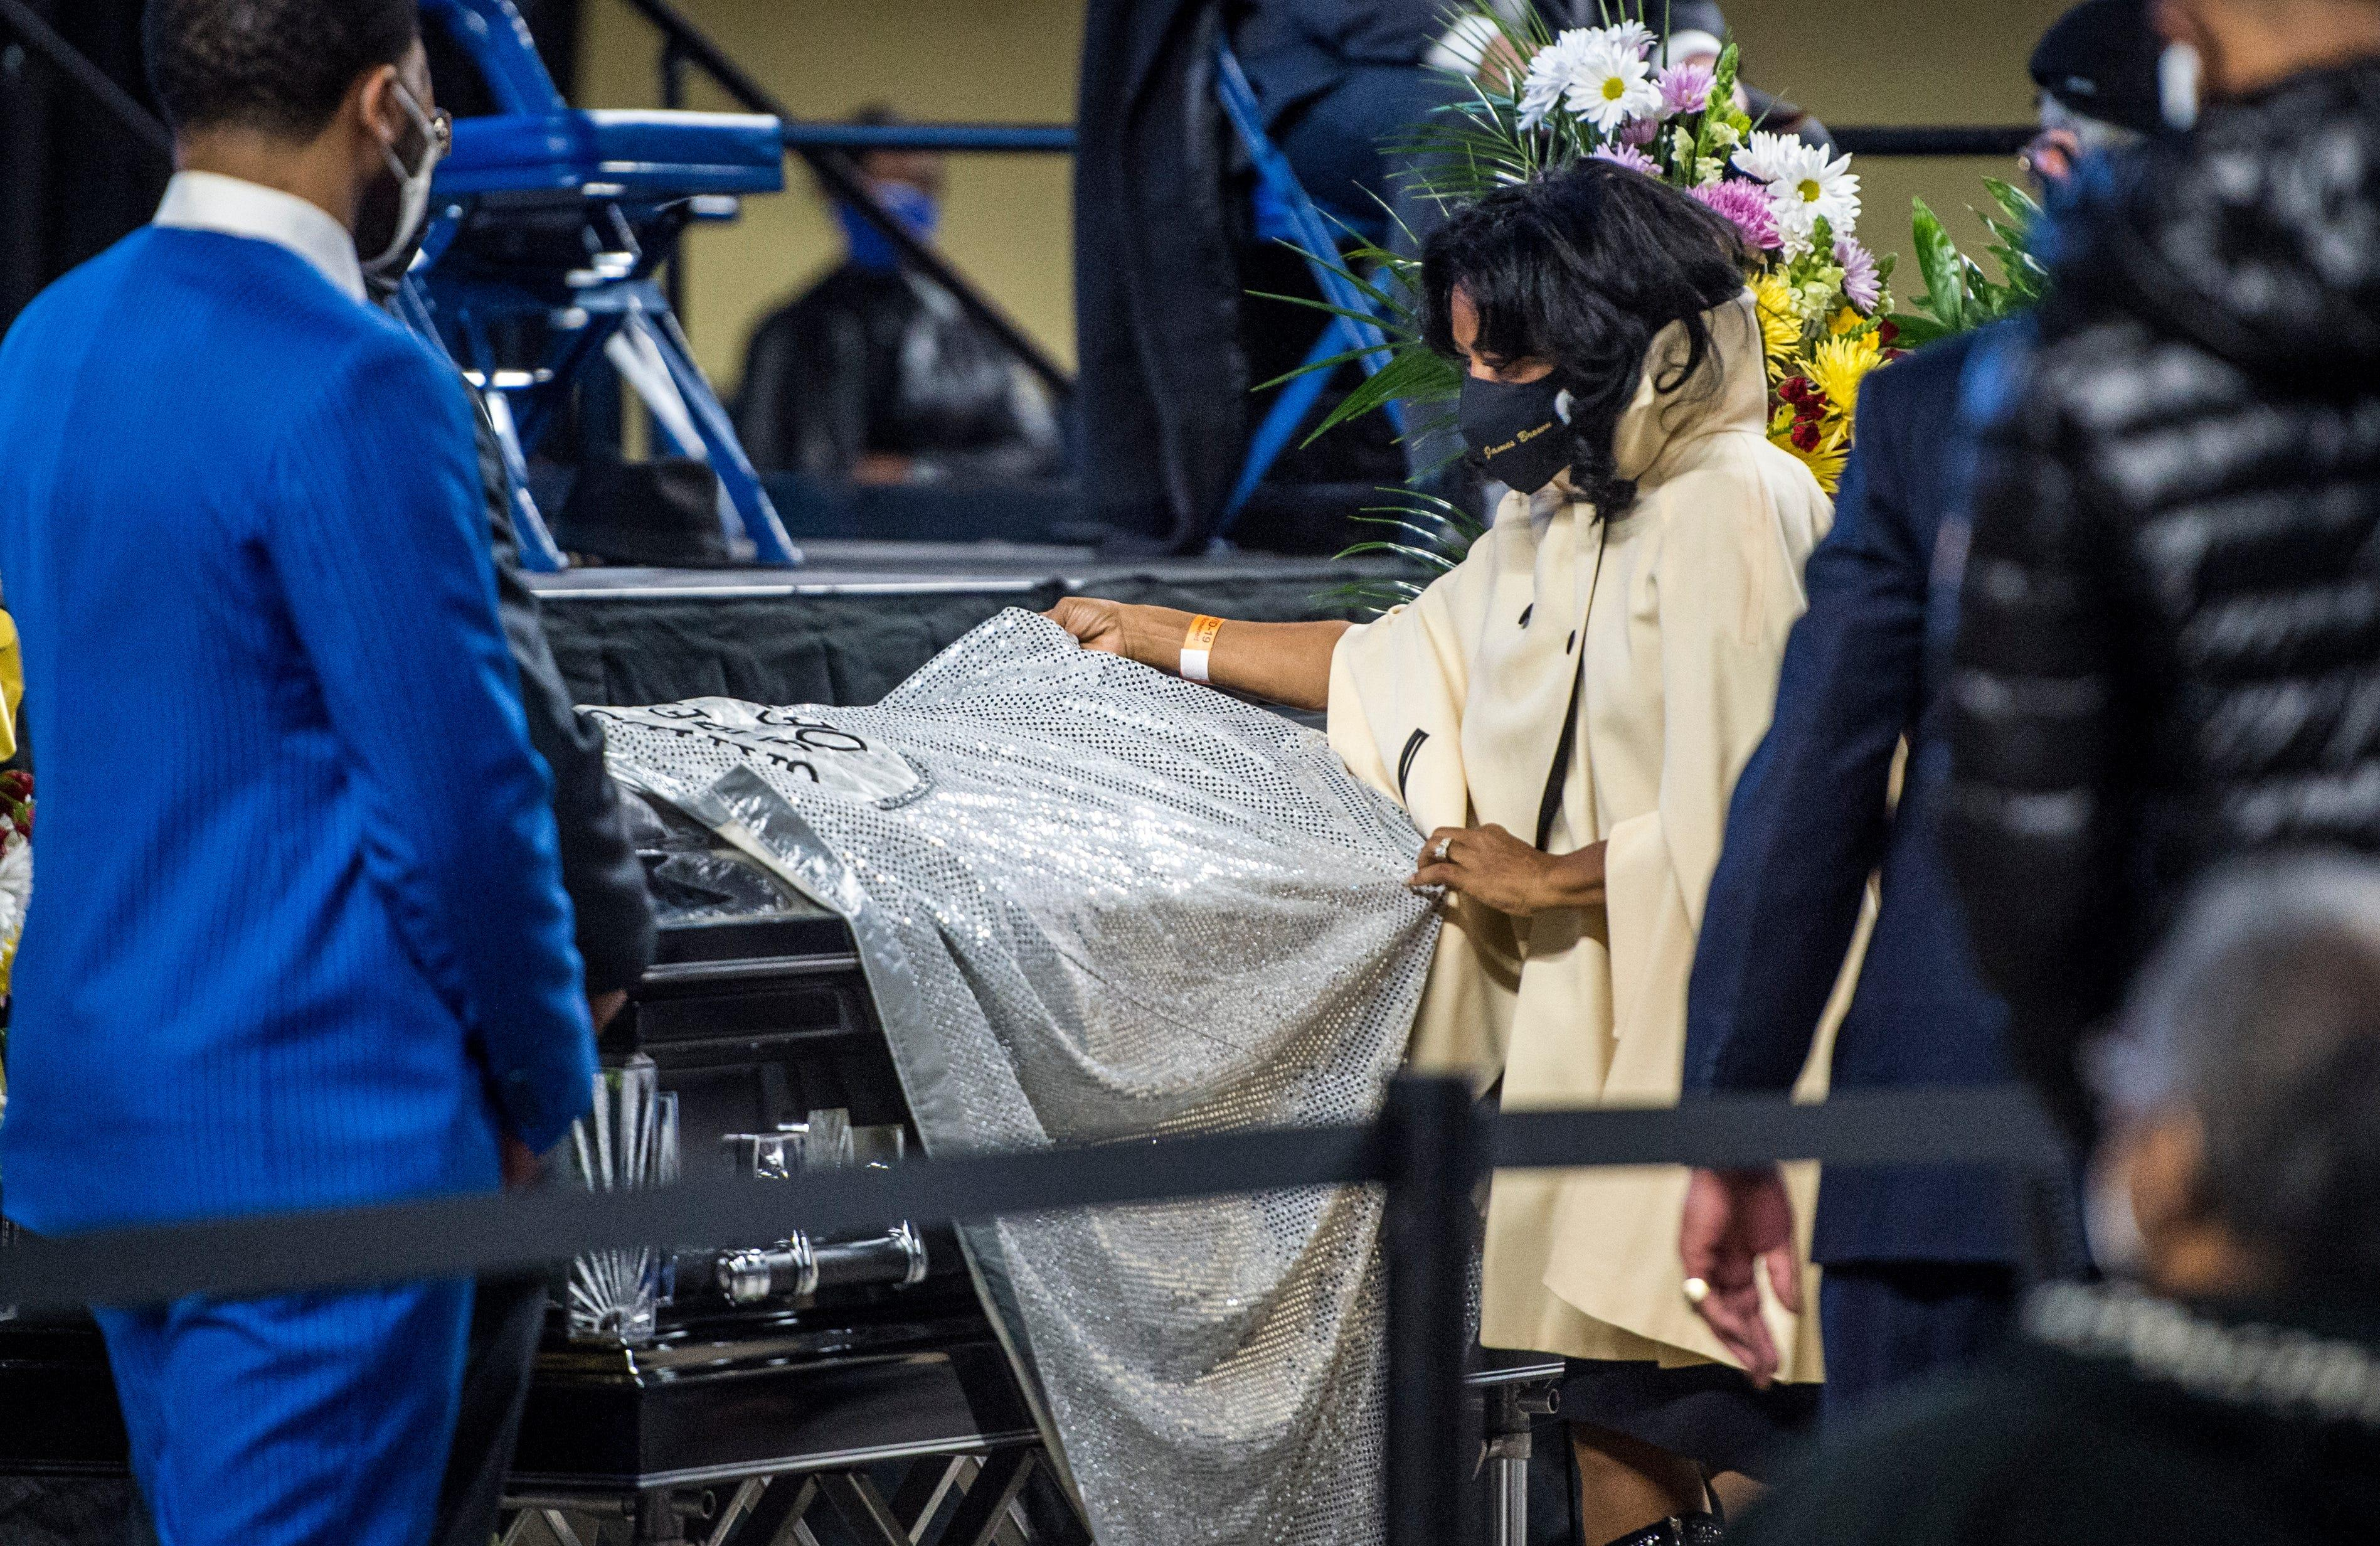 Deanna Brown-Thomas, daughter of the late soul singer James Brown, drapes one of her father's capes over the casket of Danny Ray, the famous emcee and cape man for James Brown, Saturday morning Feb. 13, 2021, at the James Brown Arena in Augusta, Ga. Ray also draped a cape over the casket of James Brown during his funeral in 2006.